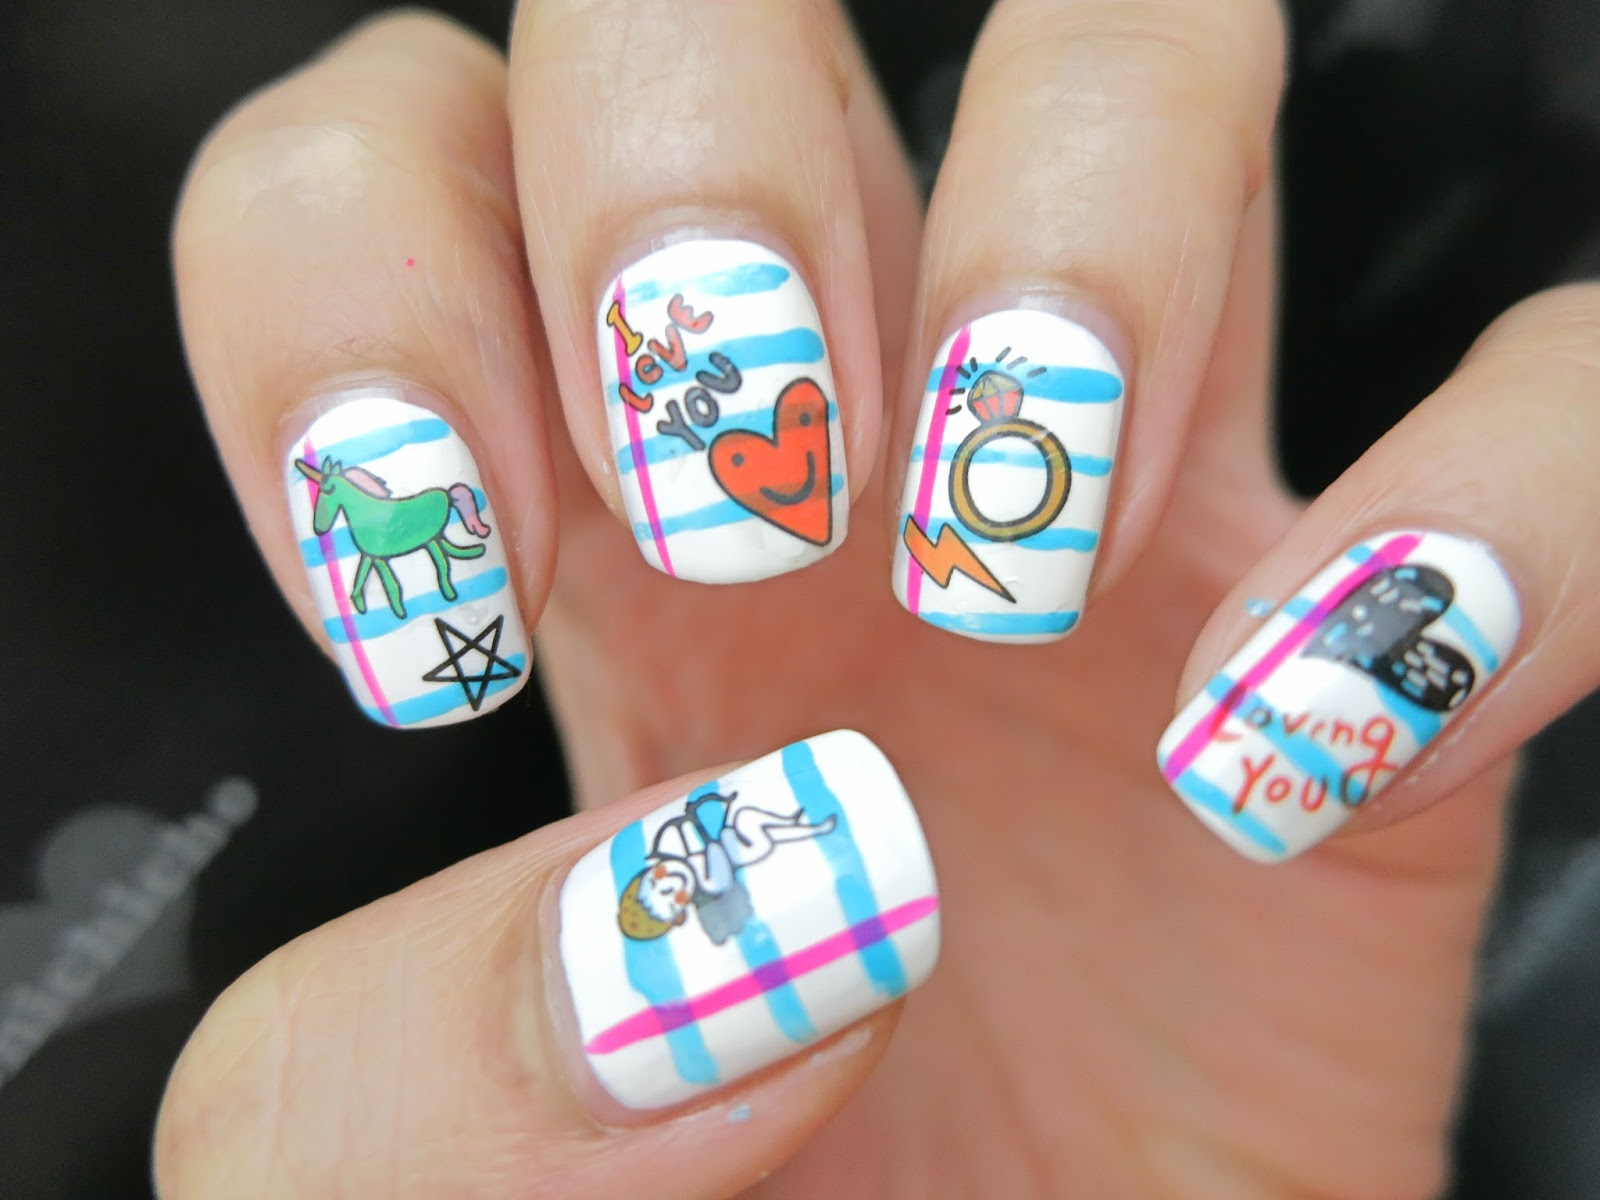 Doodle On Notebook Nail Art With Water Decal Chichicho